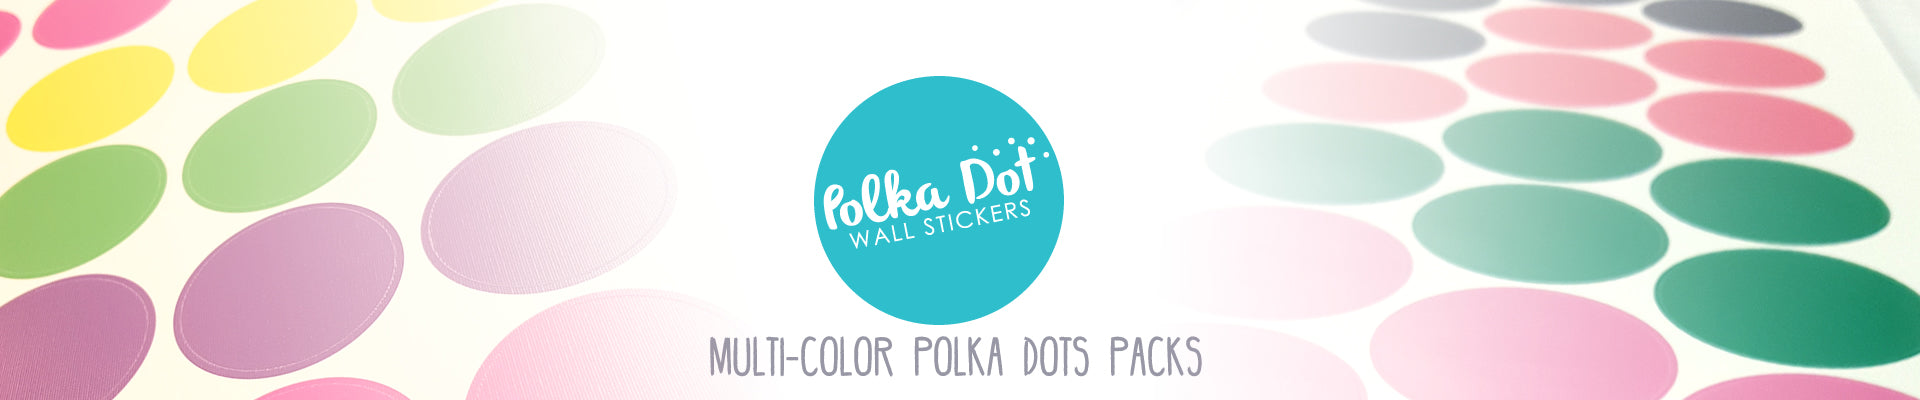 Polka Dot Wall Stickers Apartment Safe And Easy To Use - Wall decals polka dots